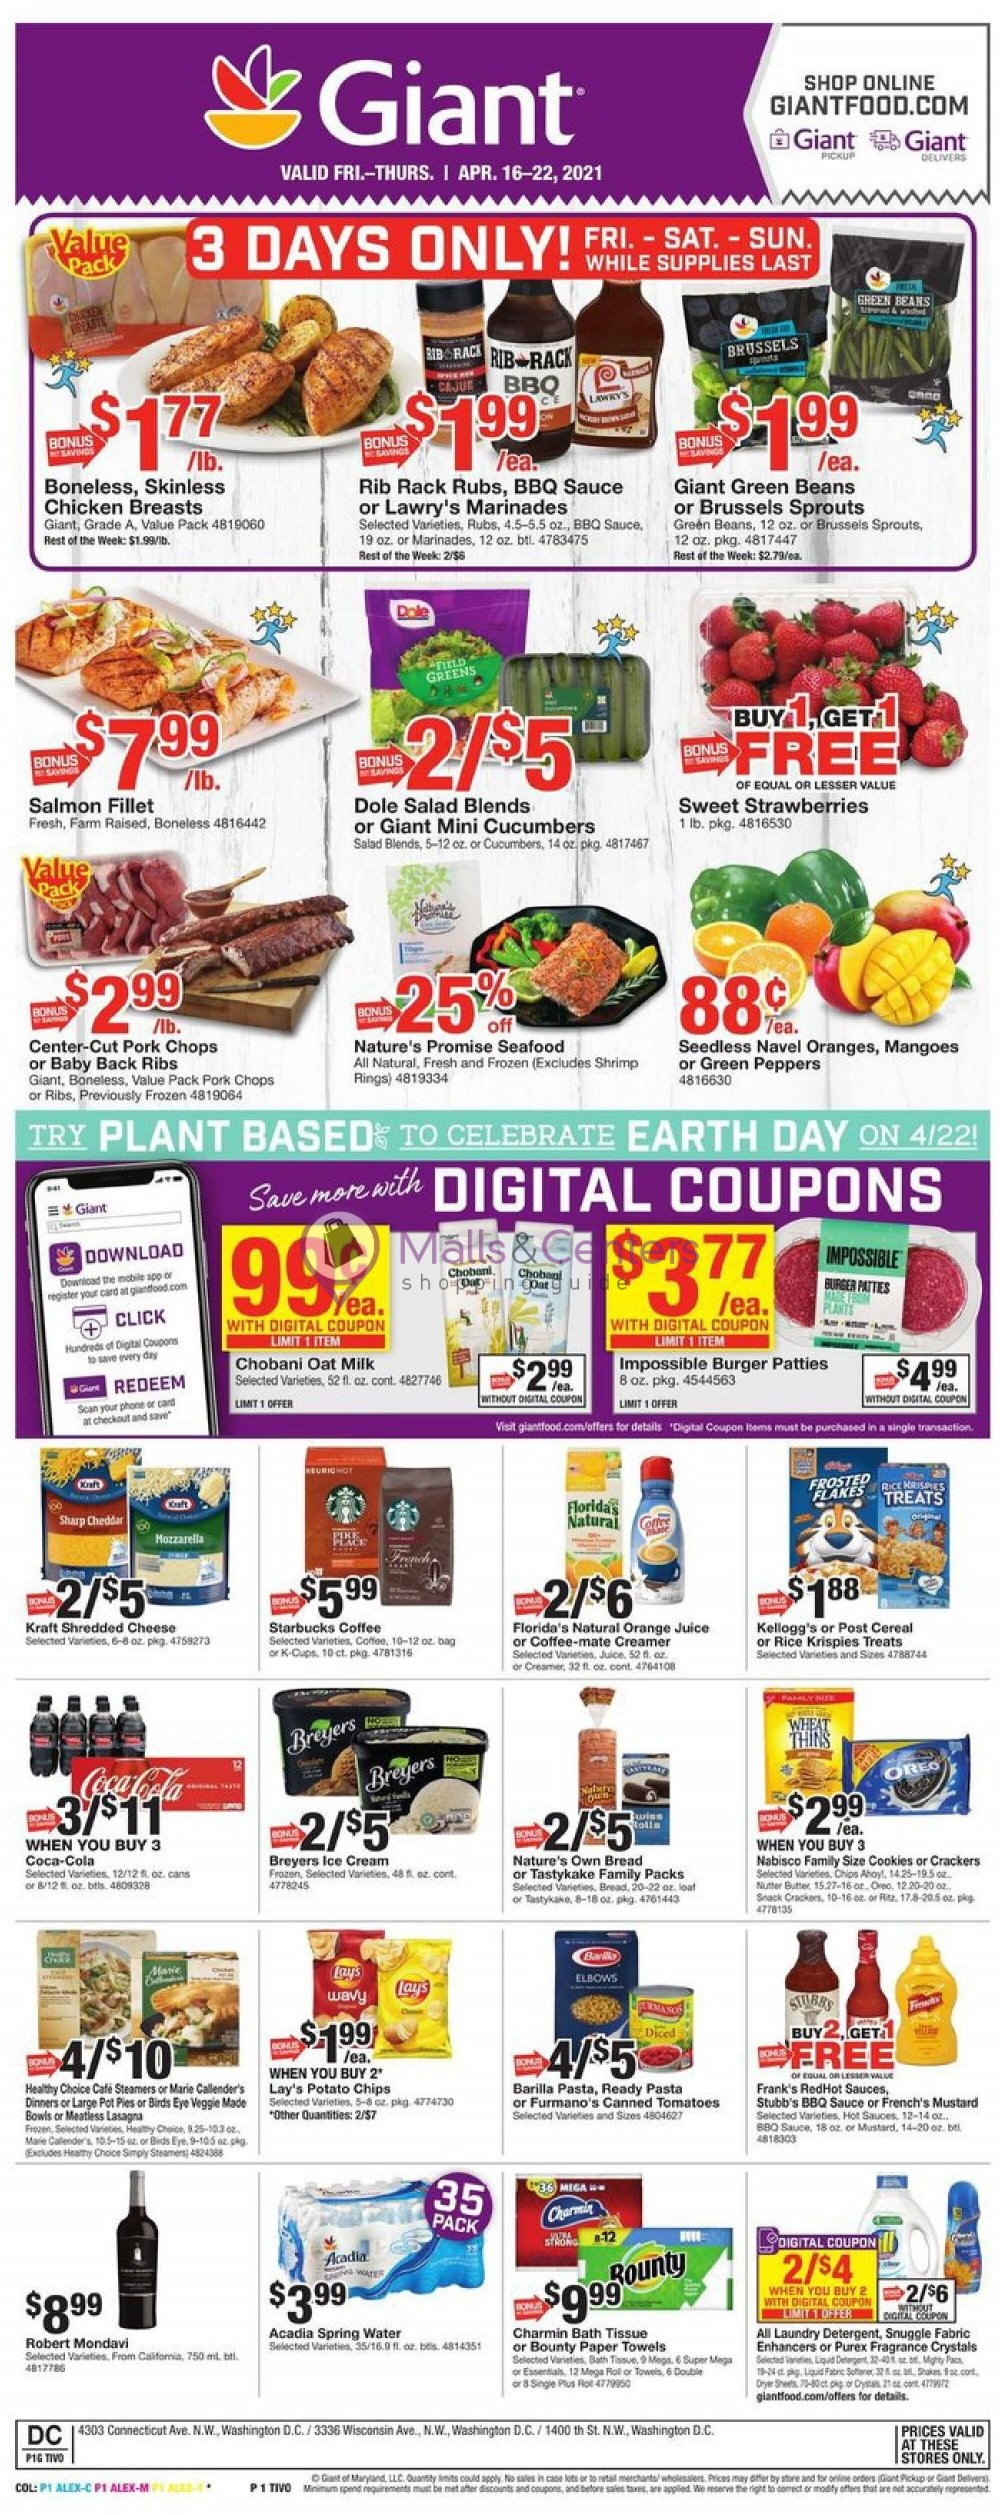 weekly ads Giant Food Stores - page 1 - mallscenters.com